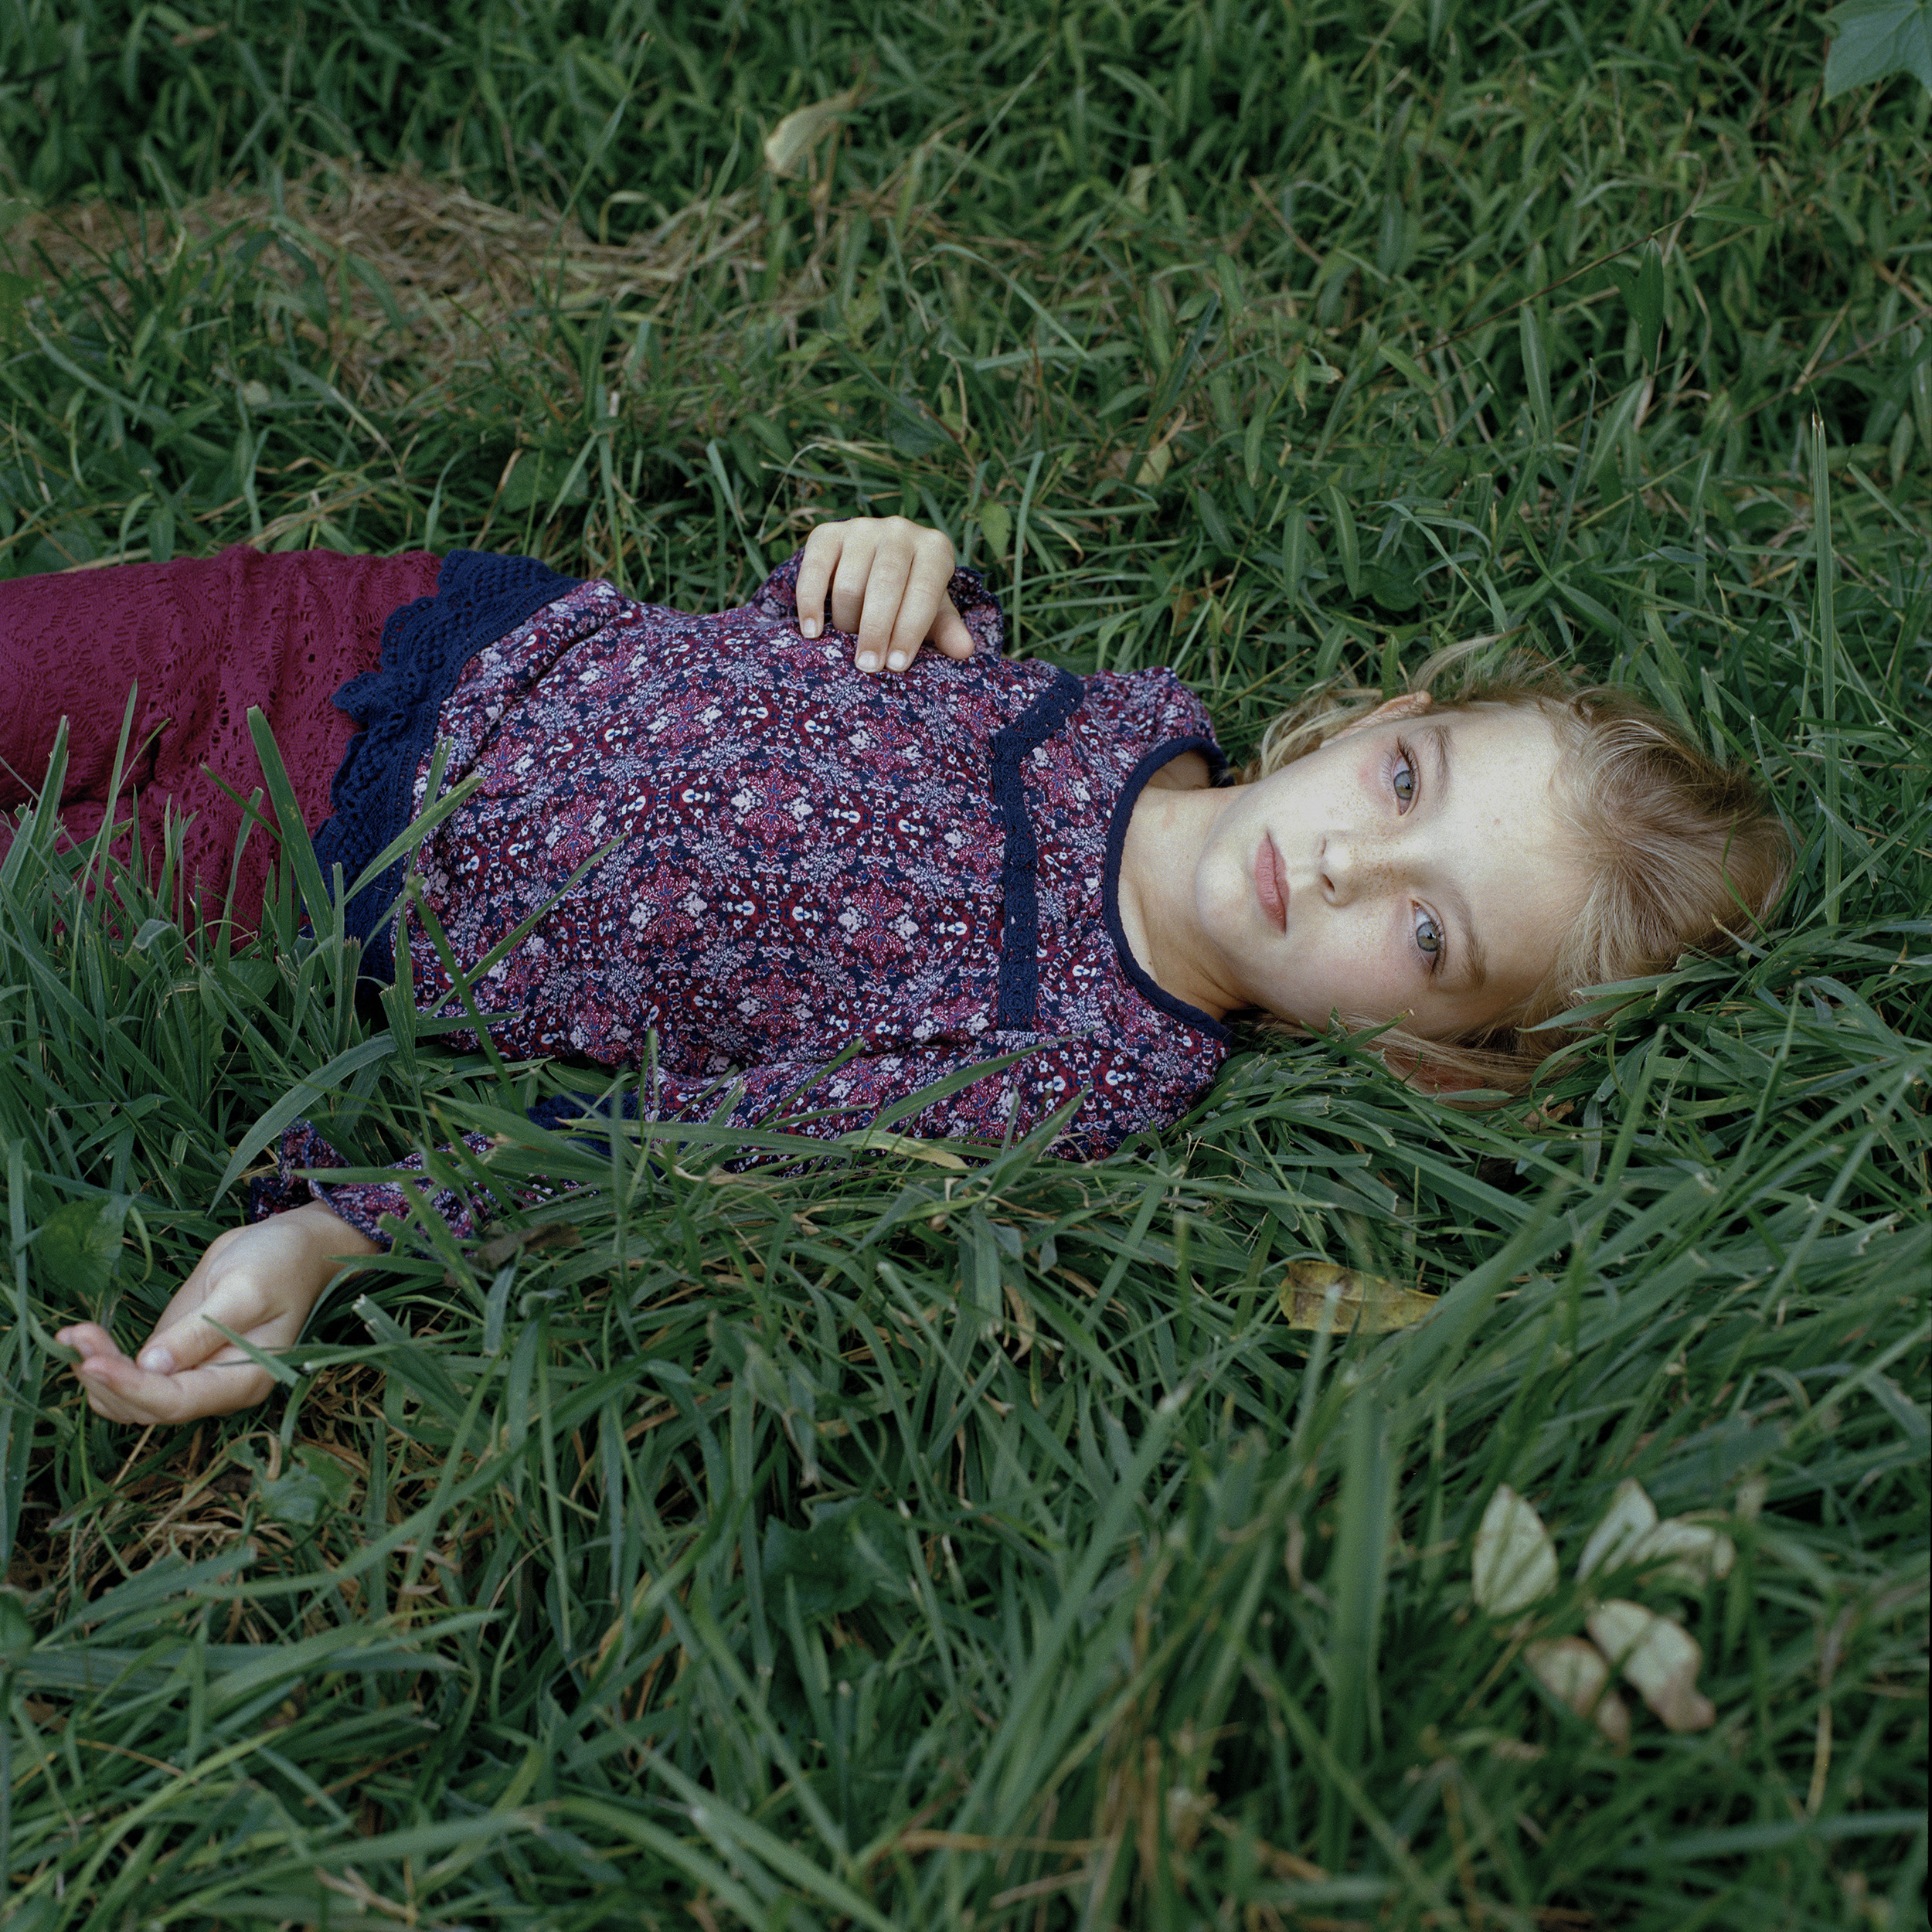 Photographic portrait of reclining girl on green grass, with purple blouse and pants